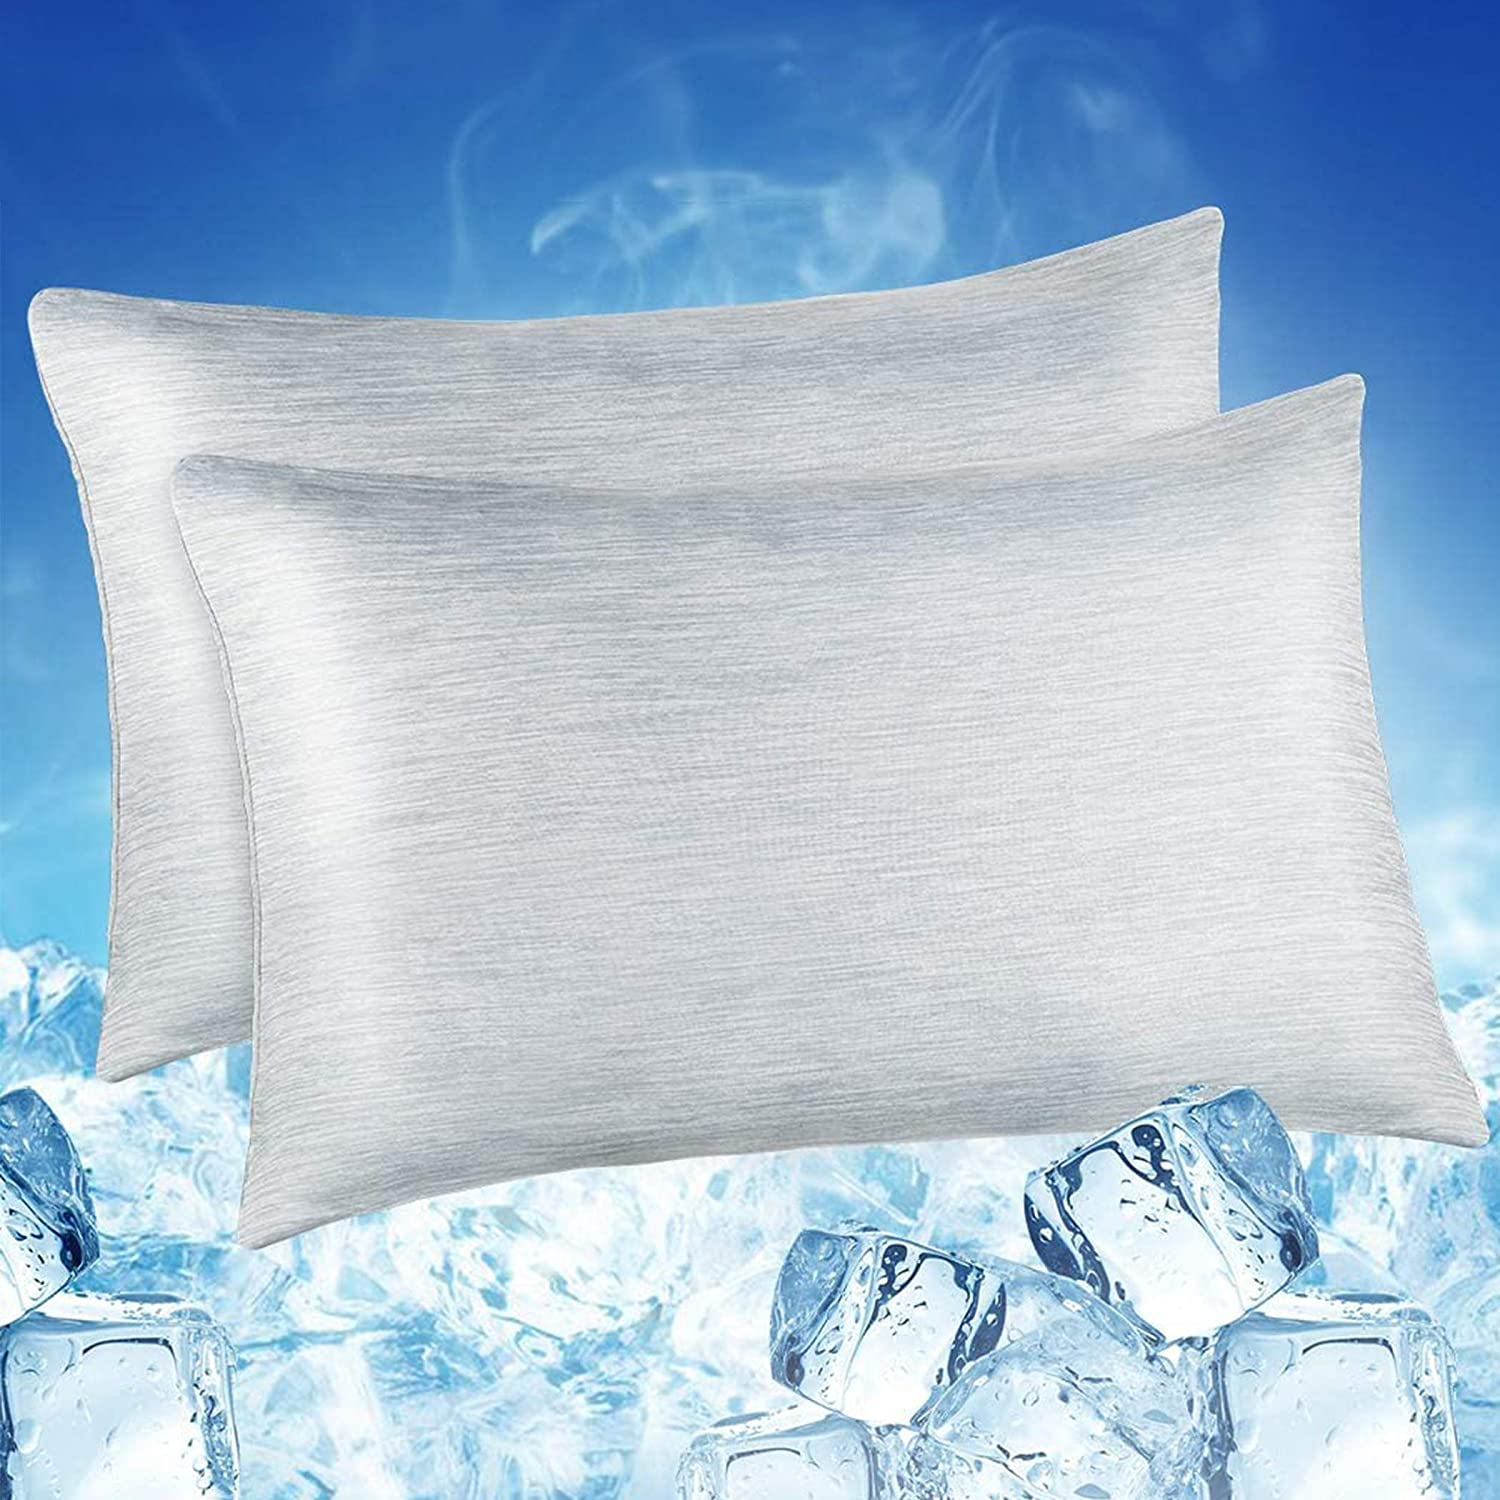 Luxear-Arc-chill-Cooling-Pillowcases Buy Luxear Arc-Chill Cooling Bedding for Hot Sleepers